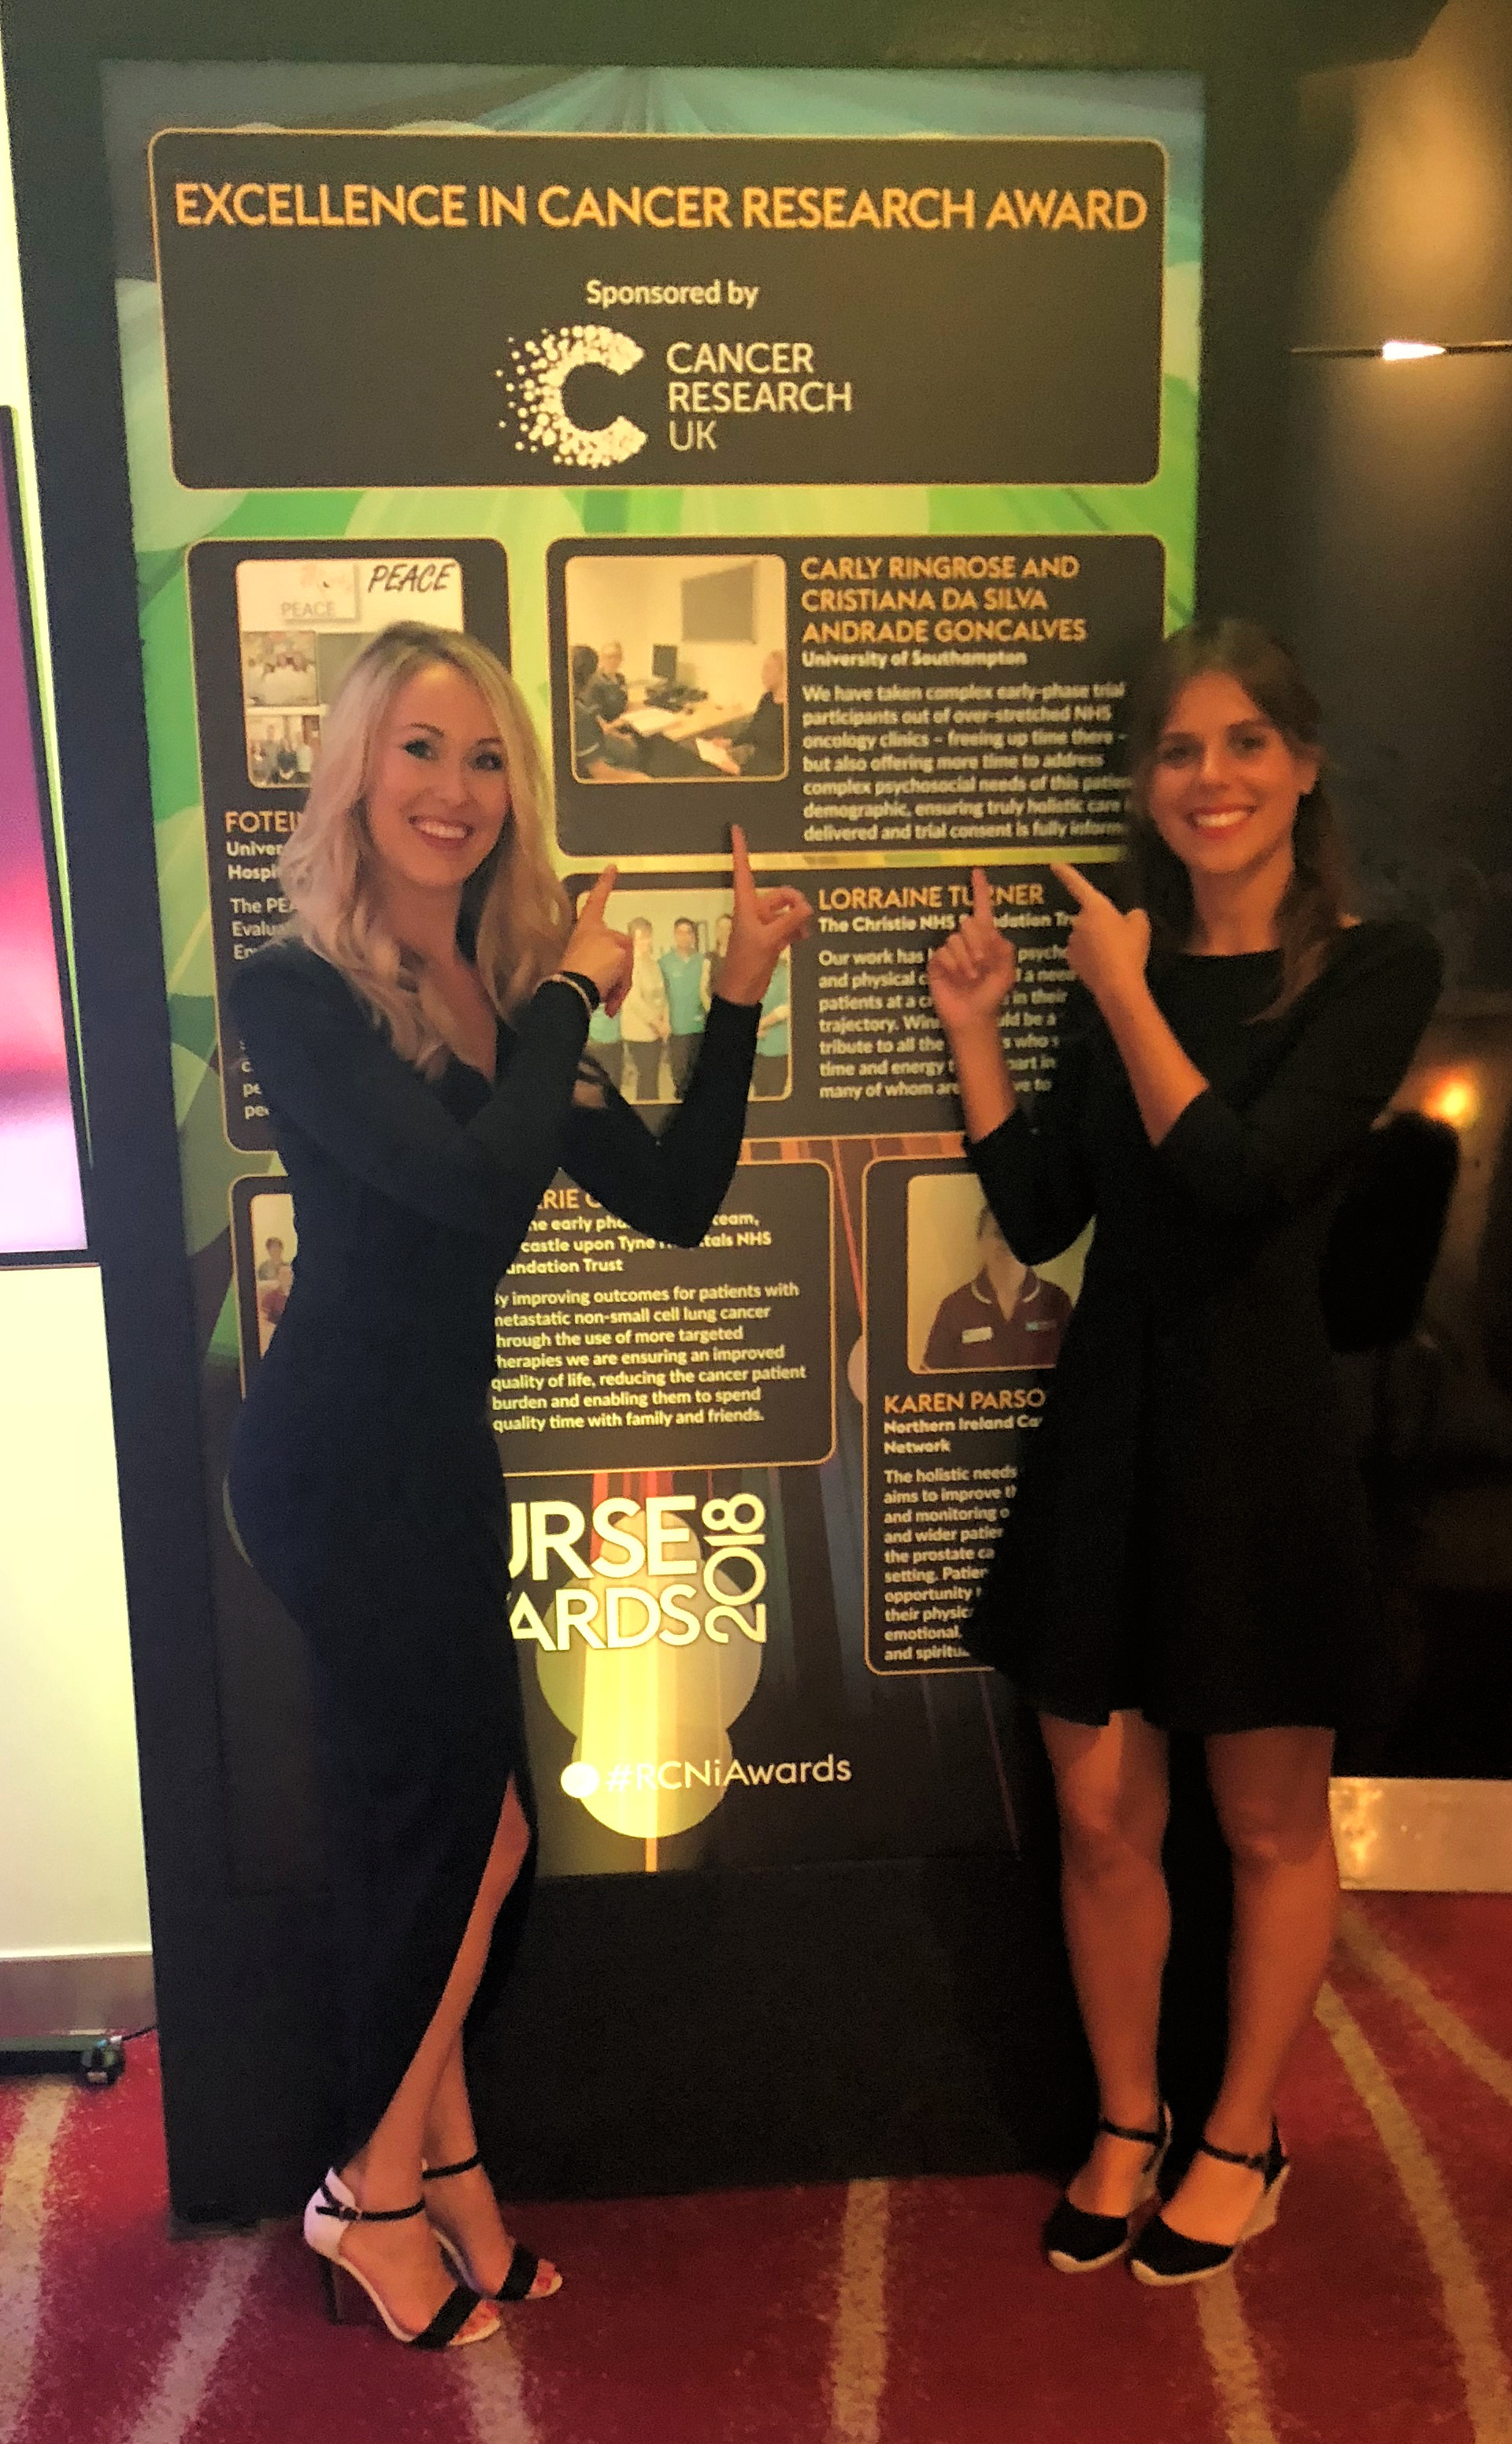 Carly Ringrose & Cristiana Goncalves - Excellence in Cancer Research Awards